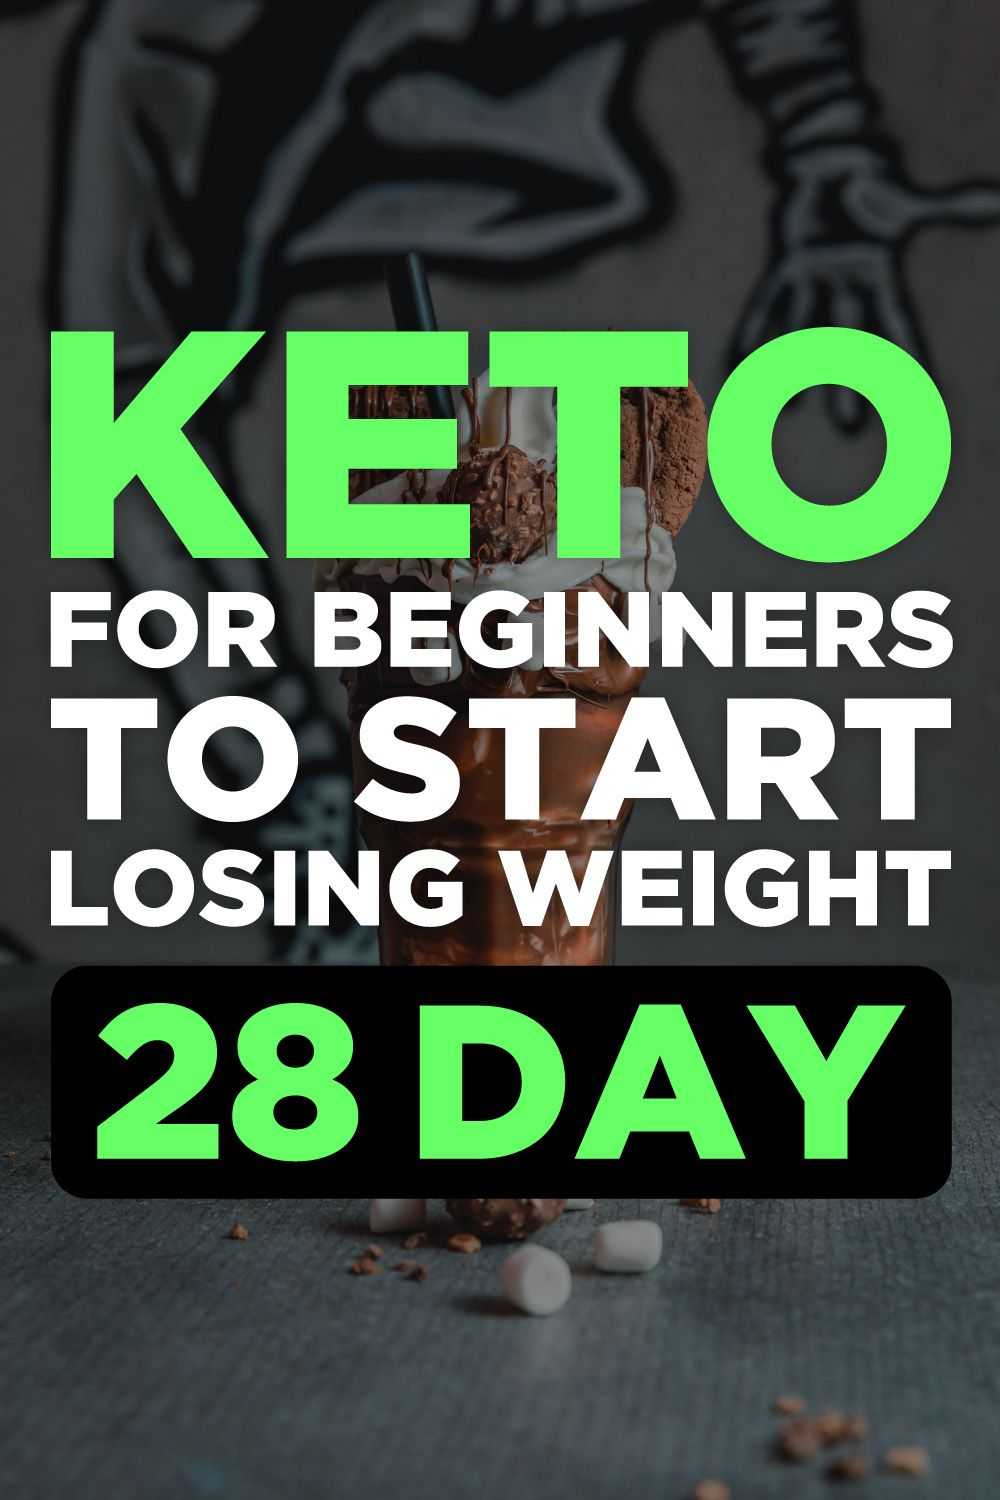 weight lose tips, keto diet headache, ketogenic diet recipes snacks, smoothies to lose weight, fat burning workout belly, low carb foods, low carb diet recipes, diet for abs women, meal replacement shakes weightloss, nutribullet for weight loss, adkins recipes atkins diet, recipe to lose weight, want to lose weight, atkins casserole, how to lose 15 pounds, weight loss poster, low to no carb recipes, keto low carb, protien diet, weight loss nutrition plan, i need to lose weigh